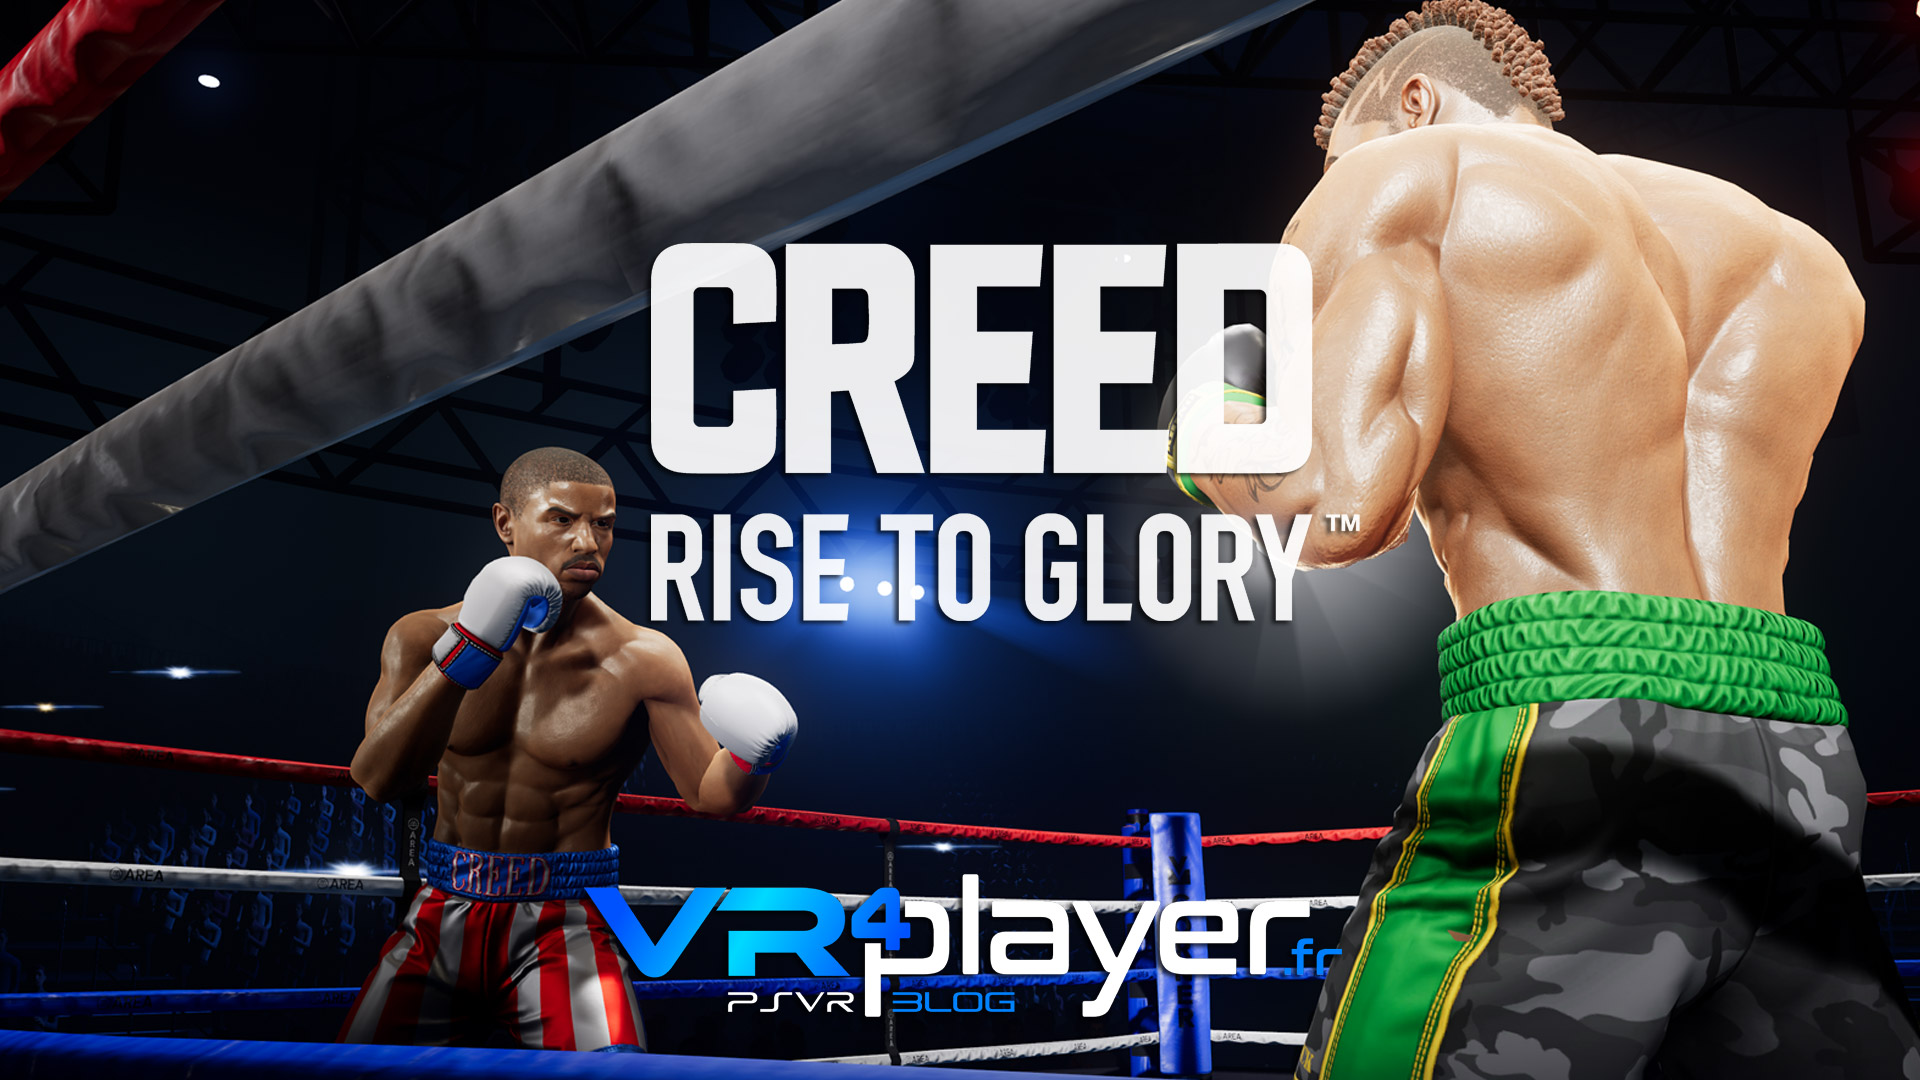 CREED Rise to Glory jouable à 2 sur PSVR vr4player.fr